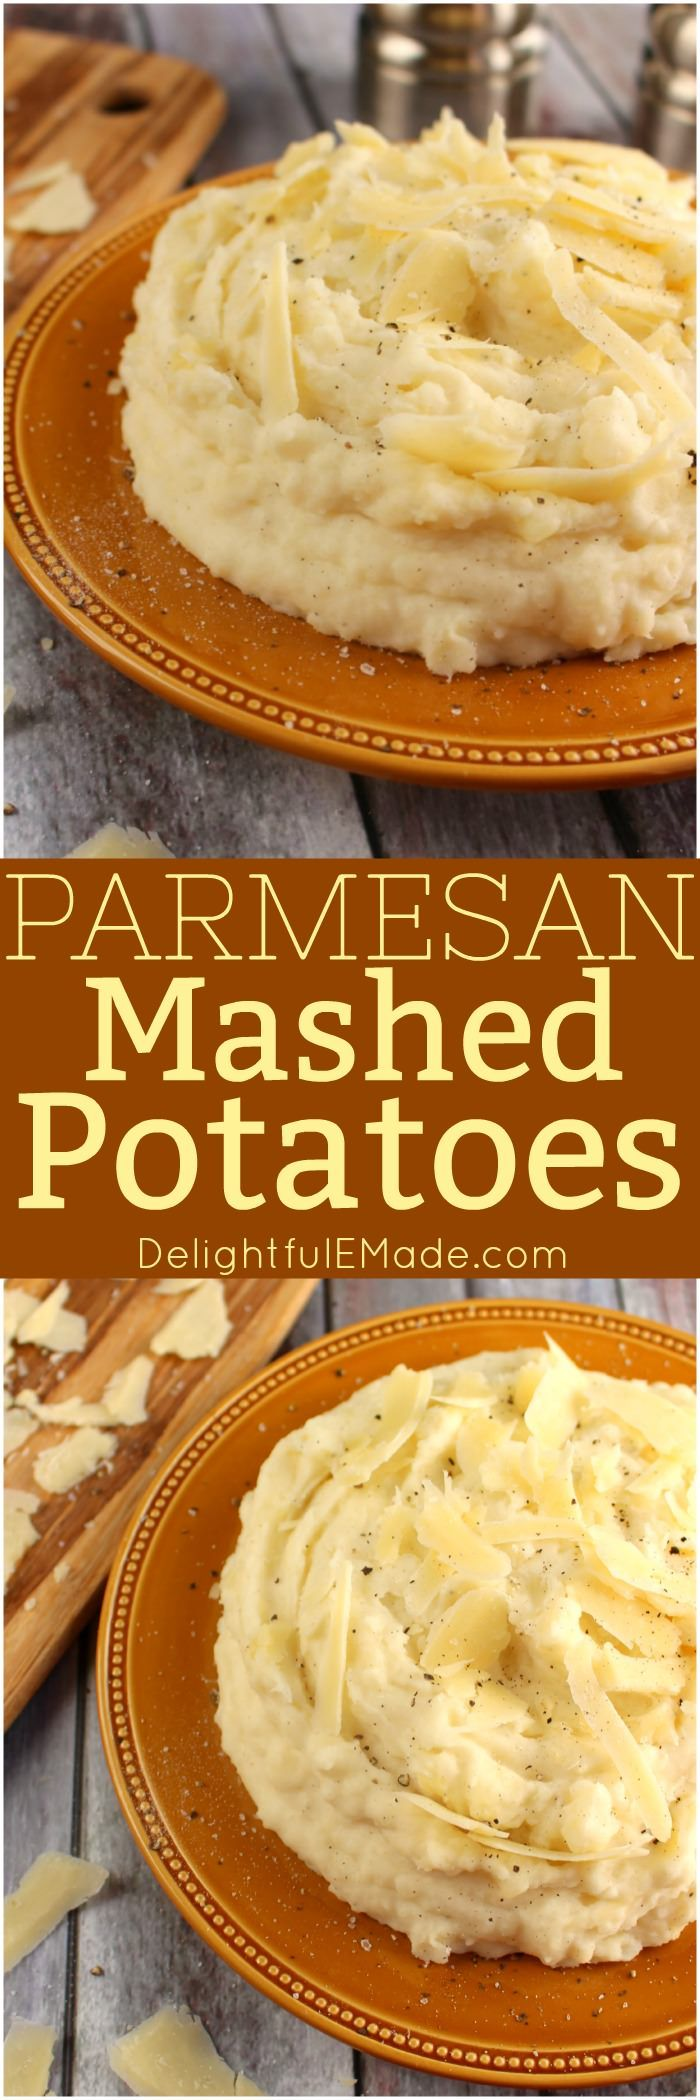 These Parmesan Mashed Potatoes Include Sour Cream Cream Cheese And Parmesan Cheese Making Them The U Parmesan Mashed Potatoes Recipes Ultimate Mashed Potatoes